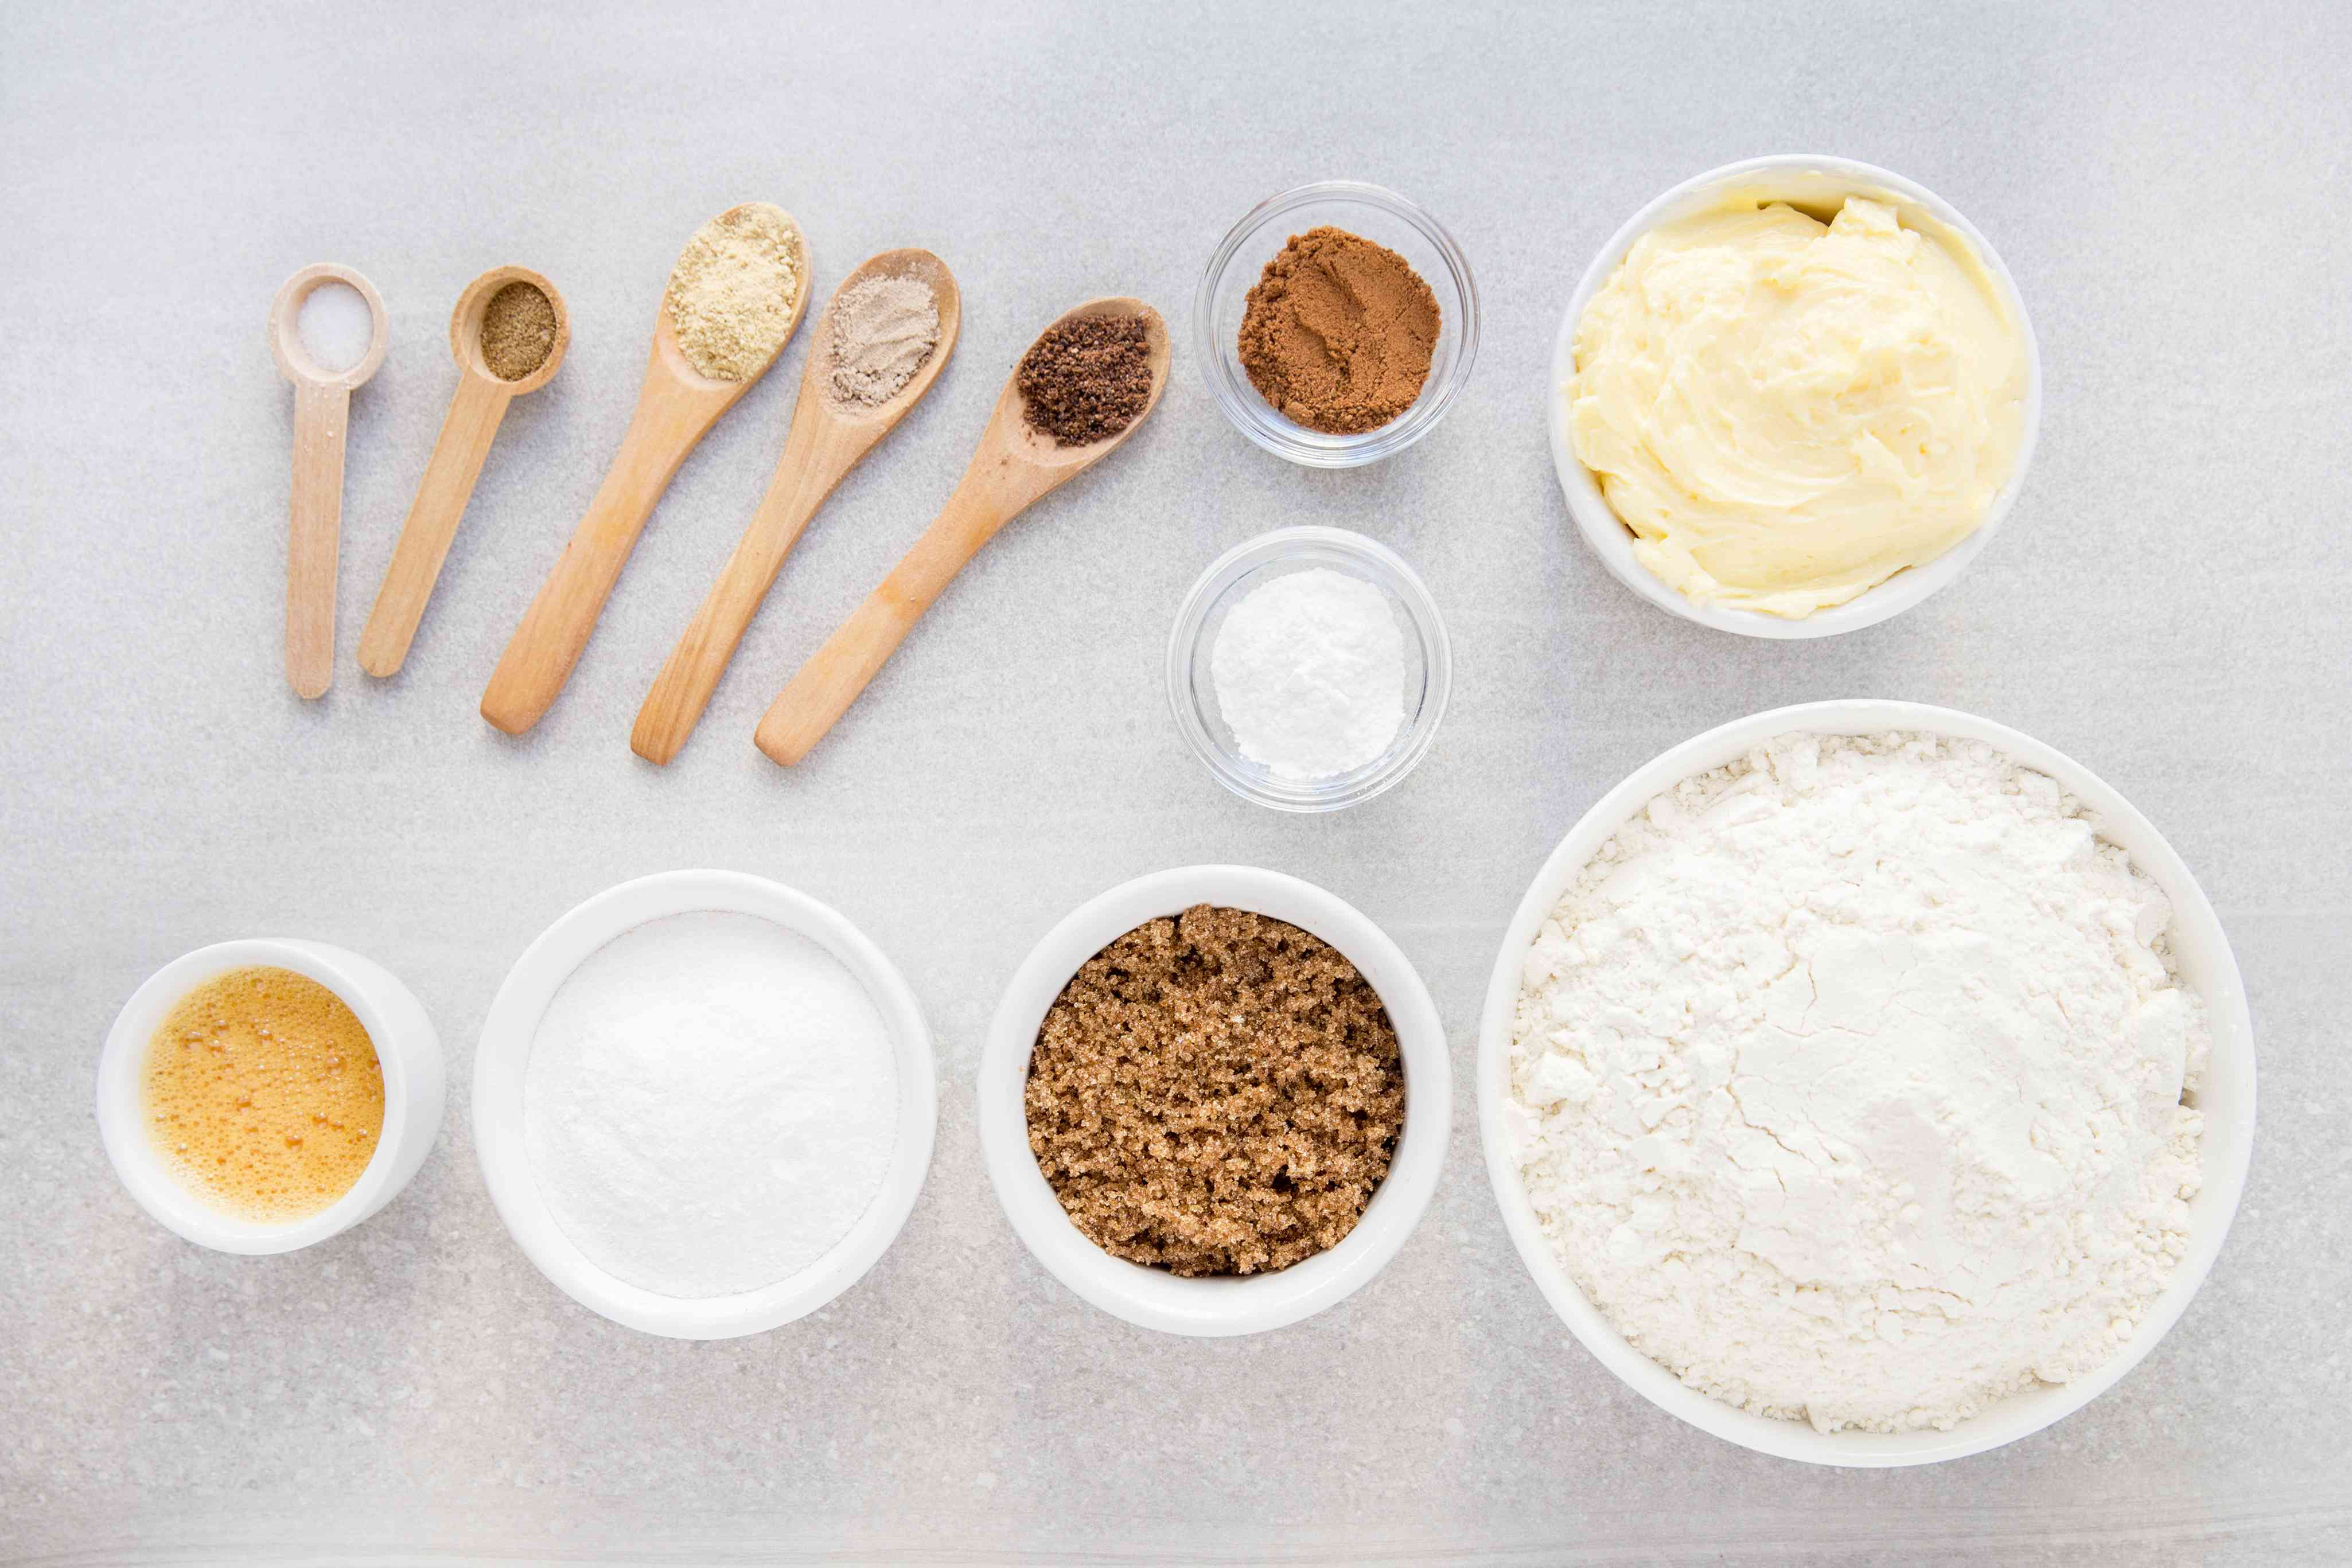 Traditional Ginger Biscuit Recipe ingredients